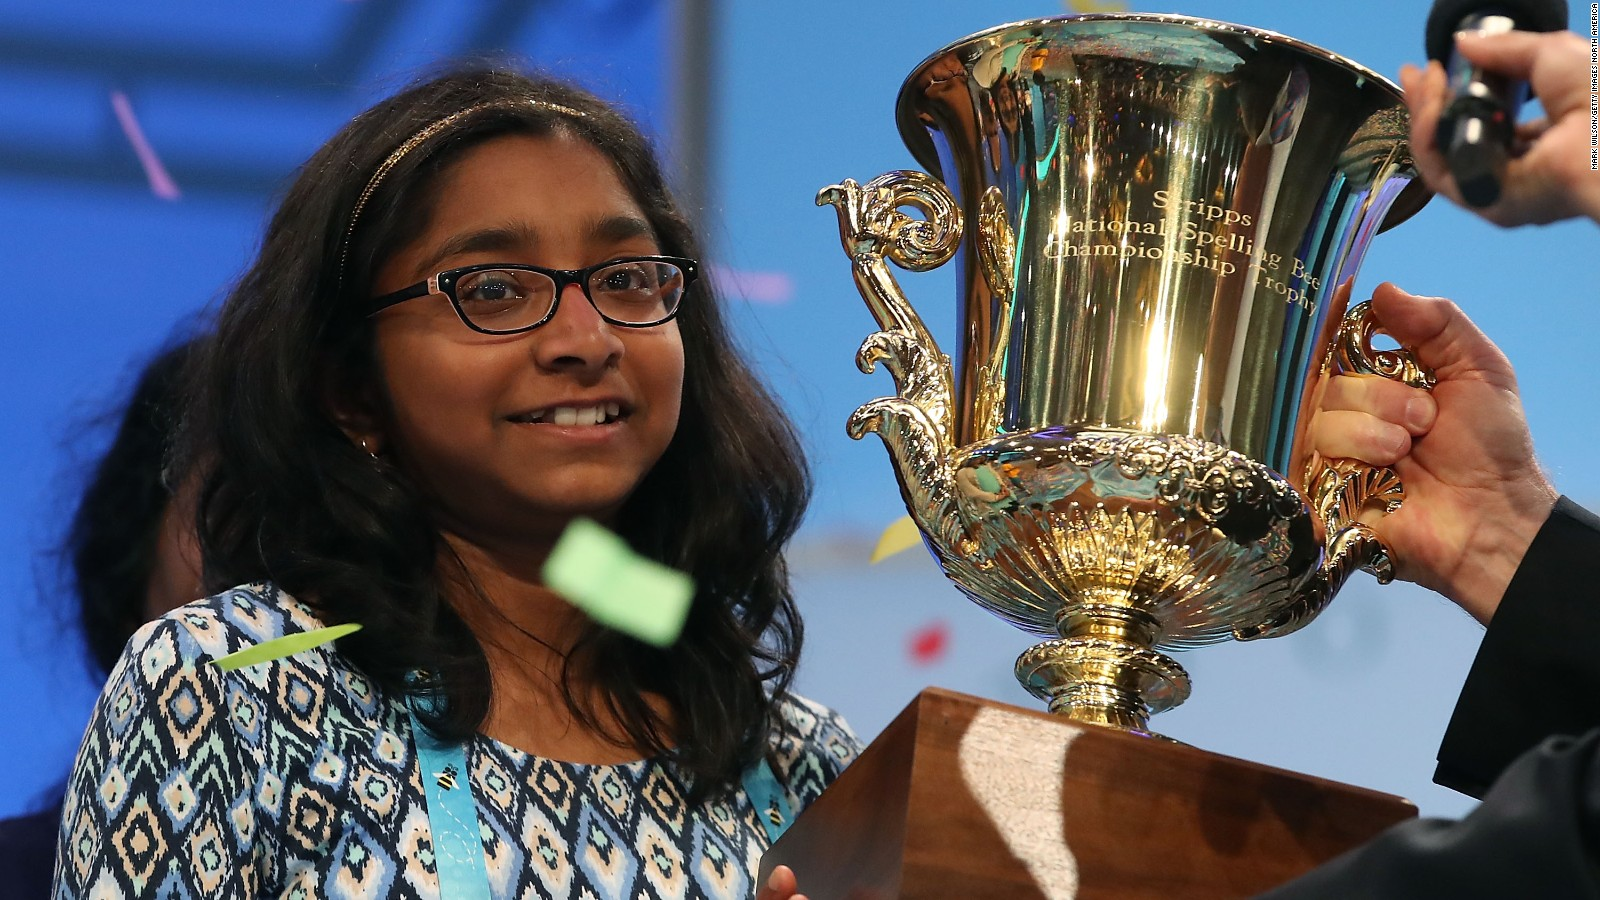 Image result for National Spelling Bee winner clinches title with 'marocain'